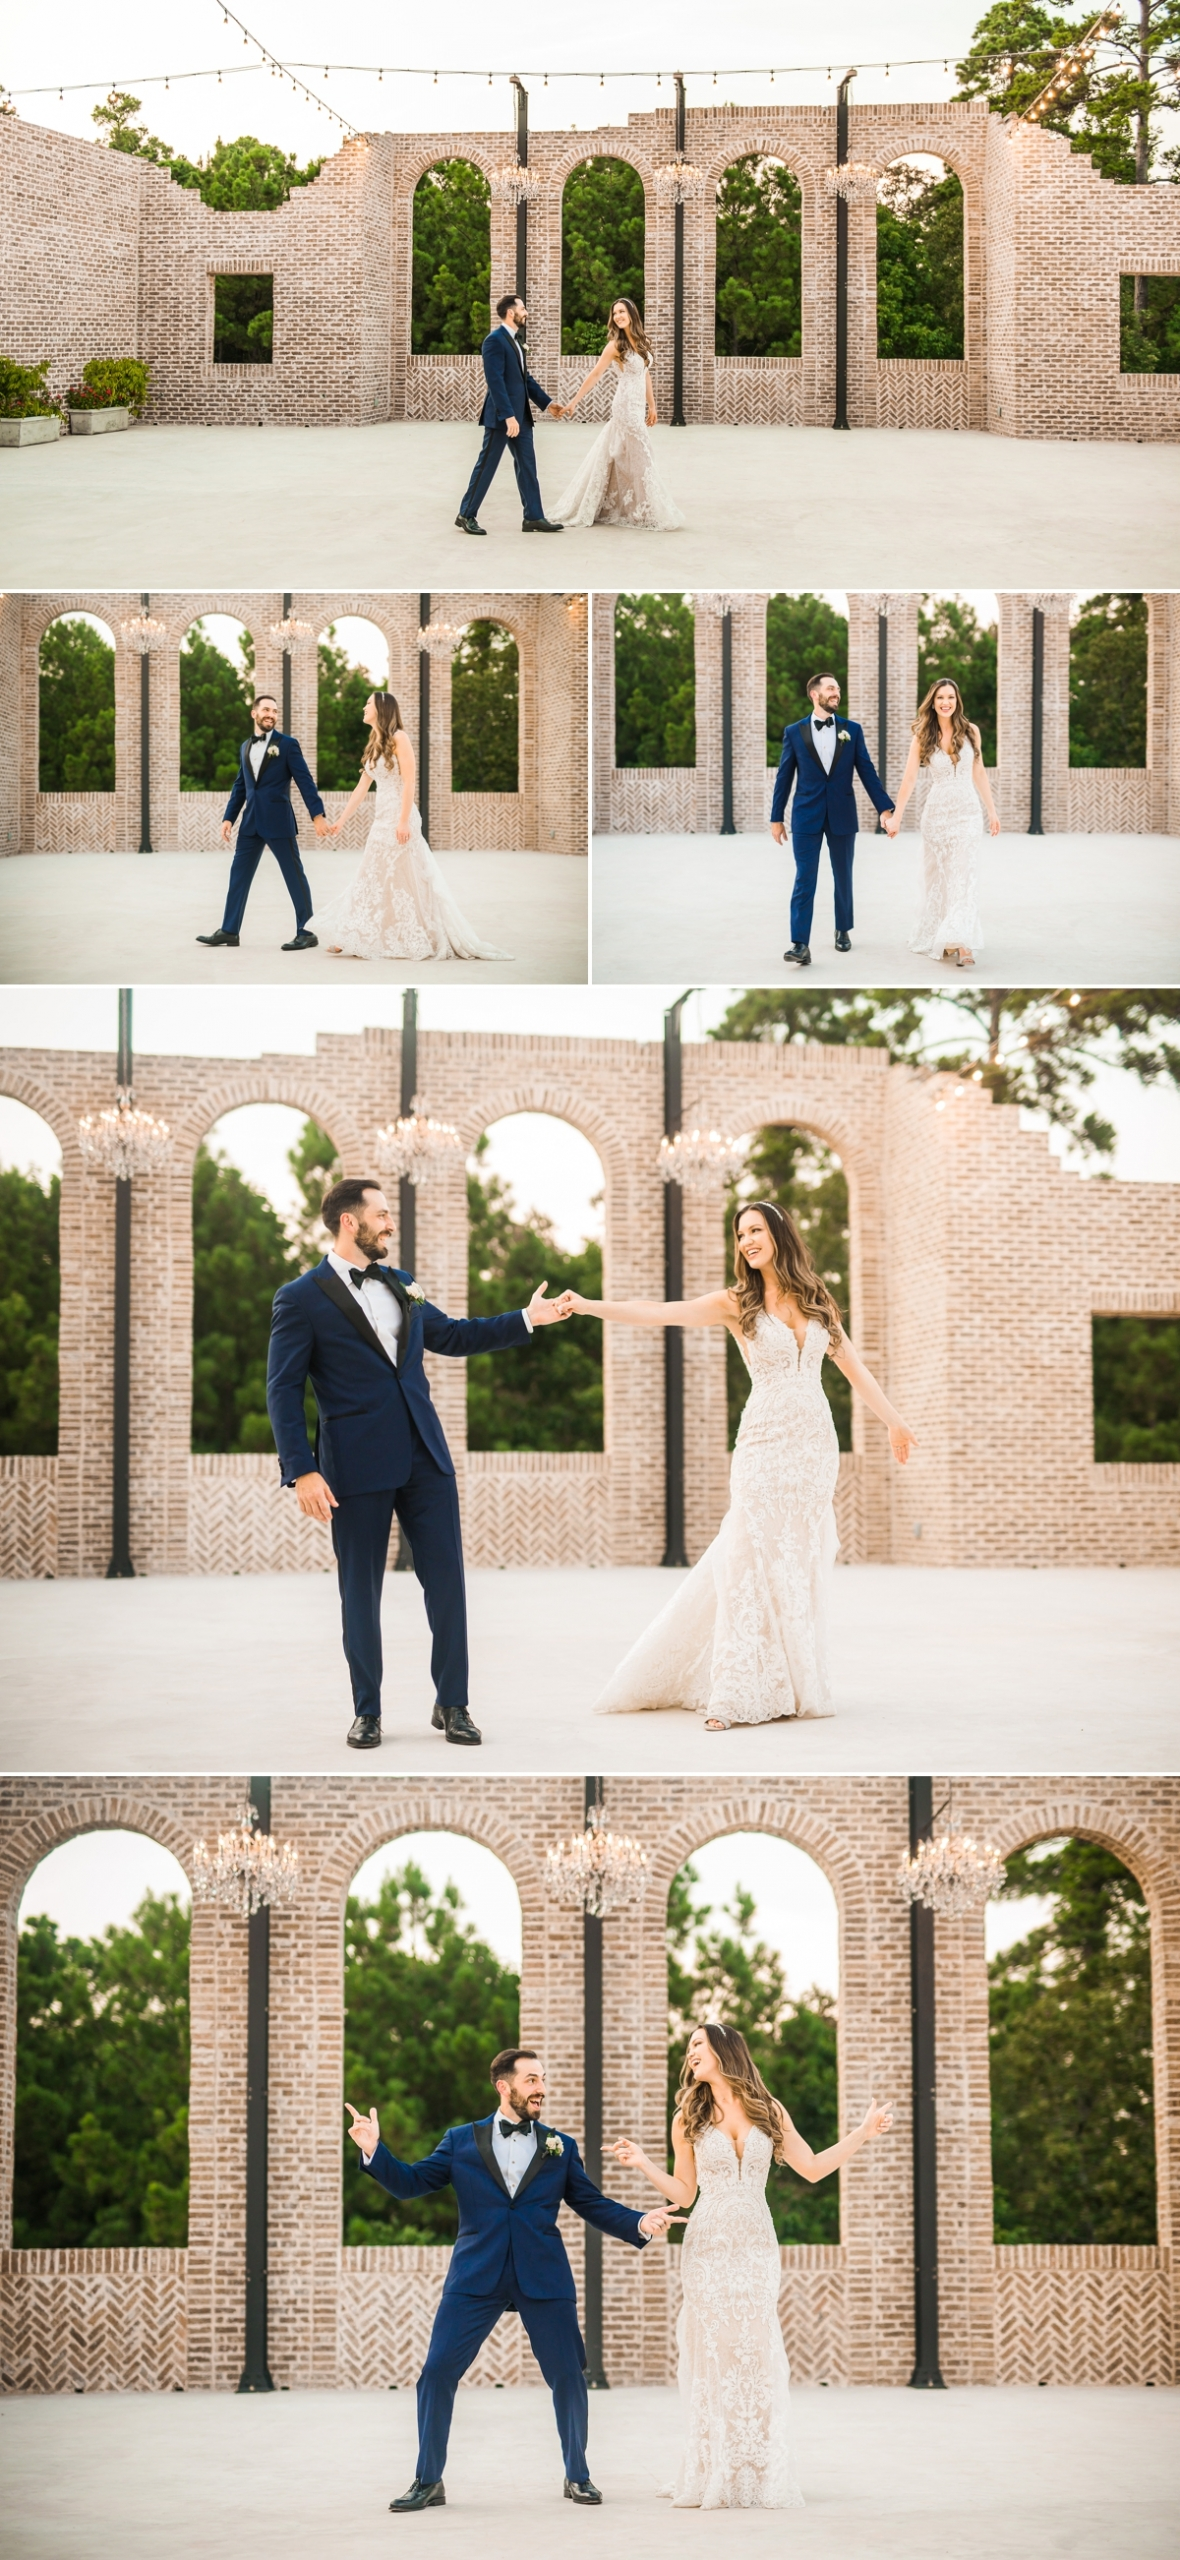 Iron Manor Bride and Groom Portraits outdoors